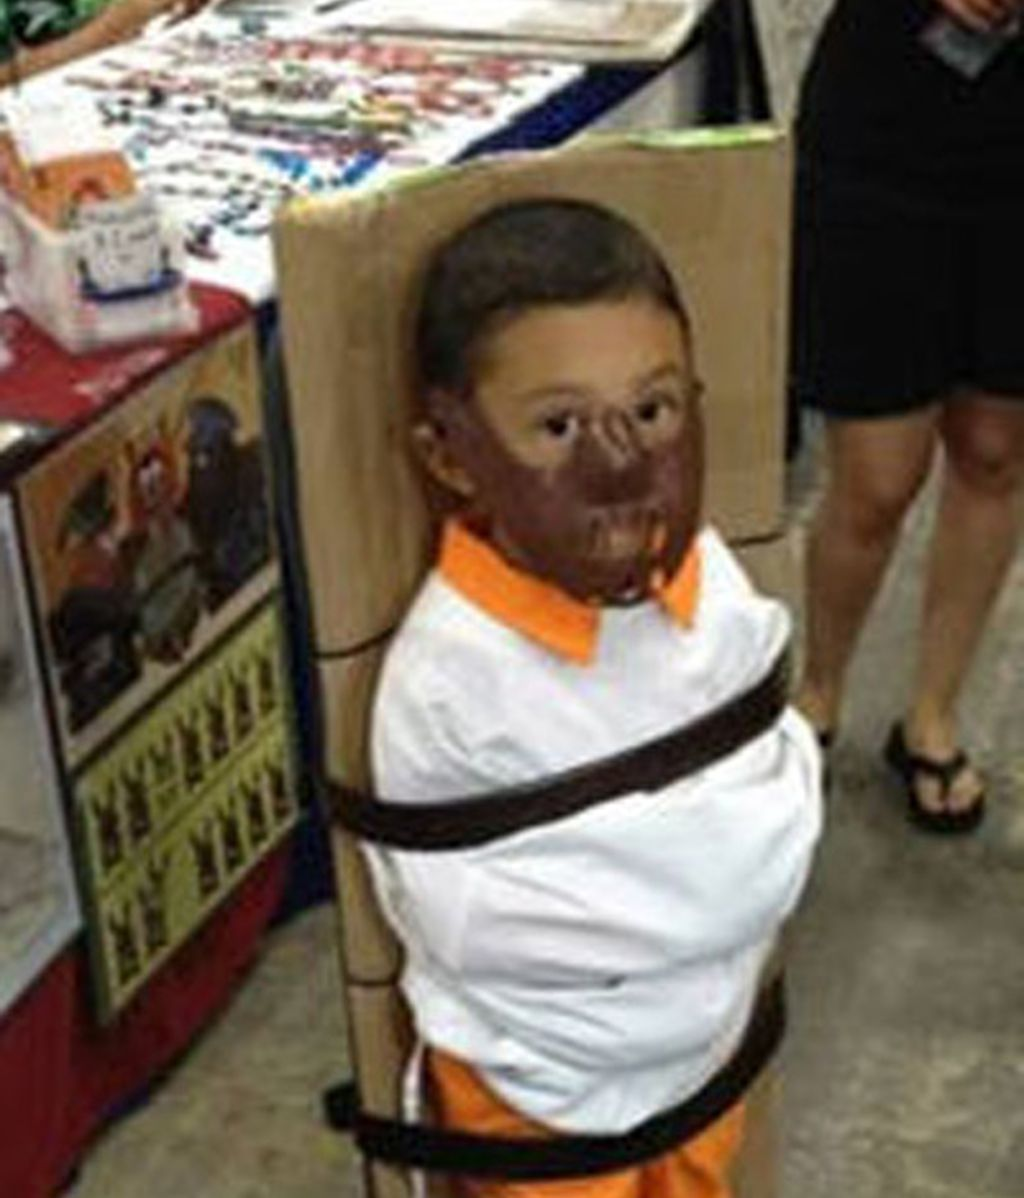 Baby Hannibal Lecter